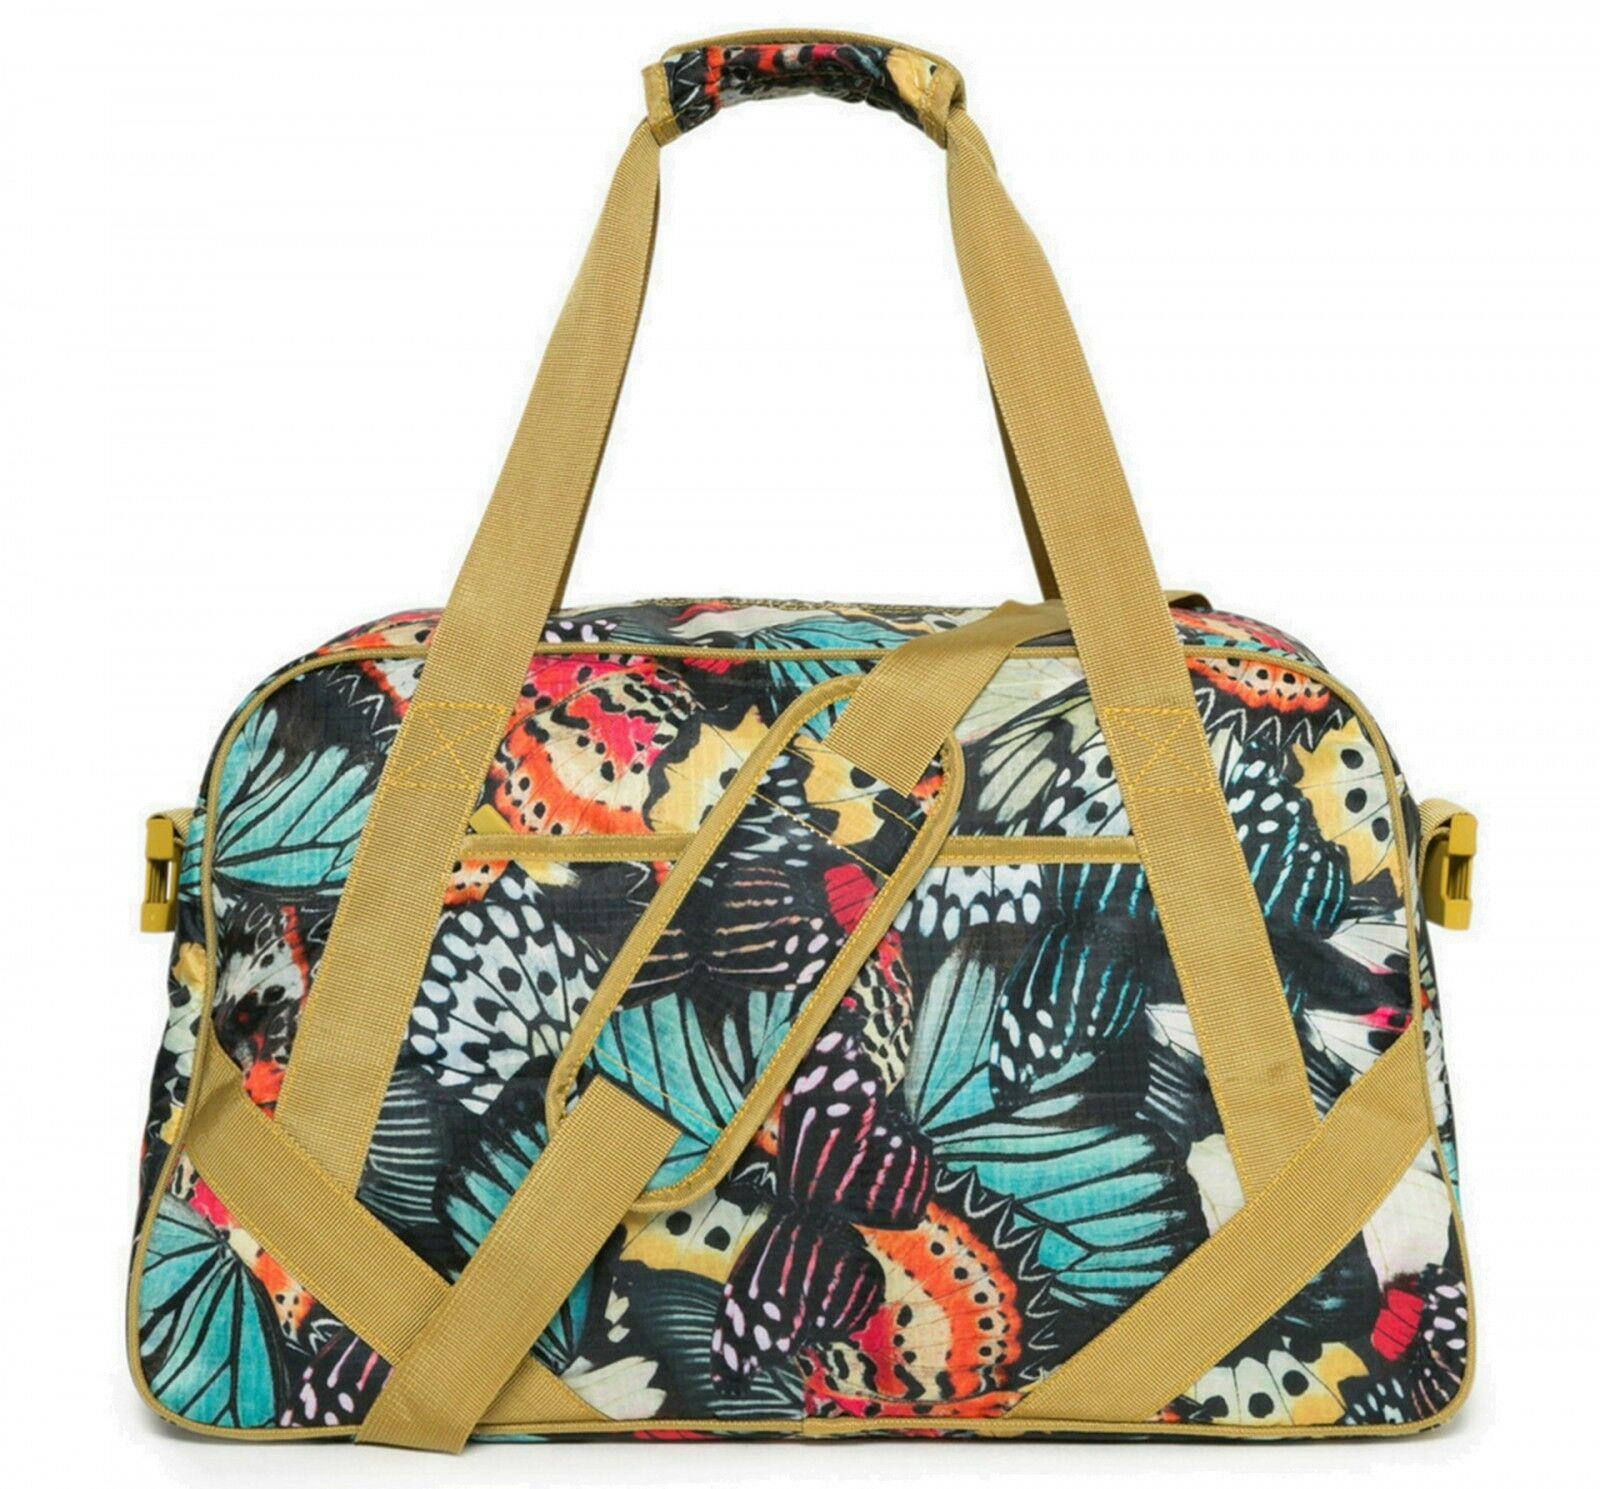 Desigual Sports Metamorphosis Gym Bag